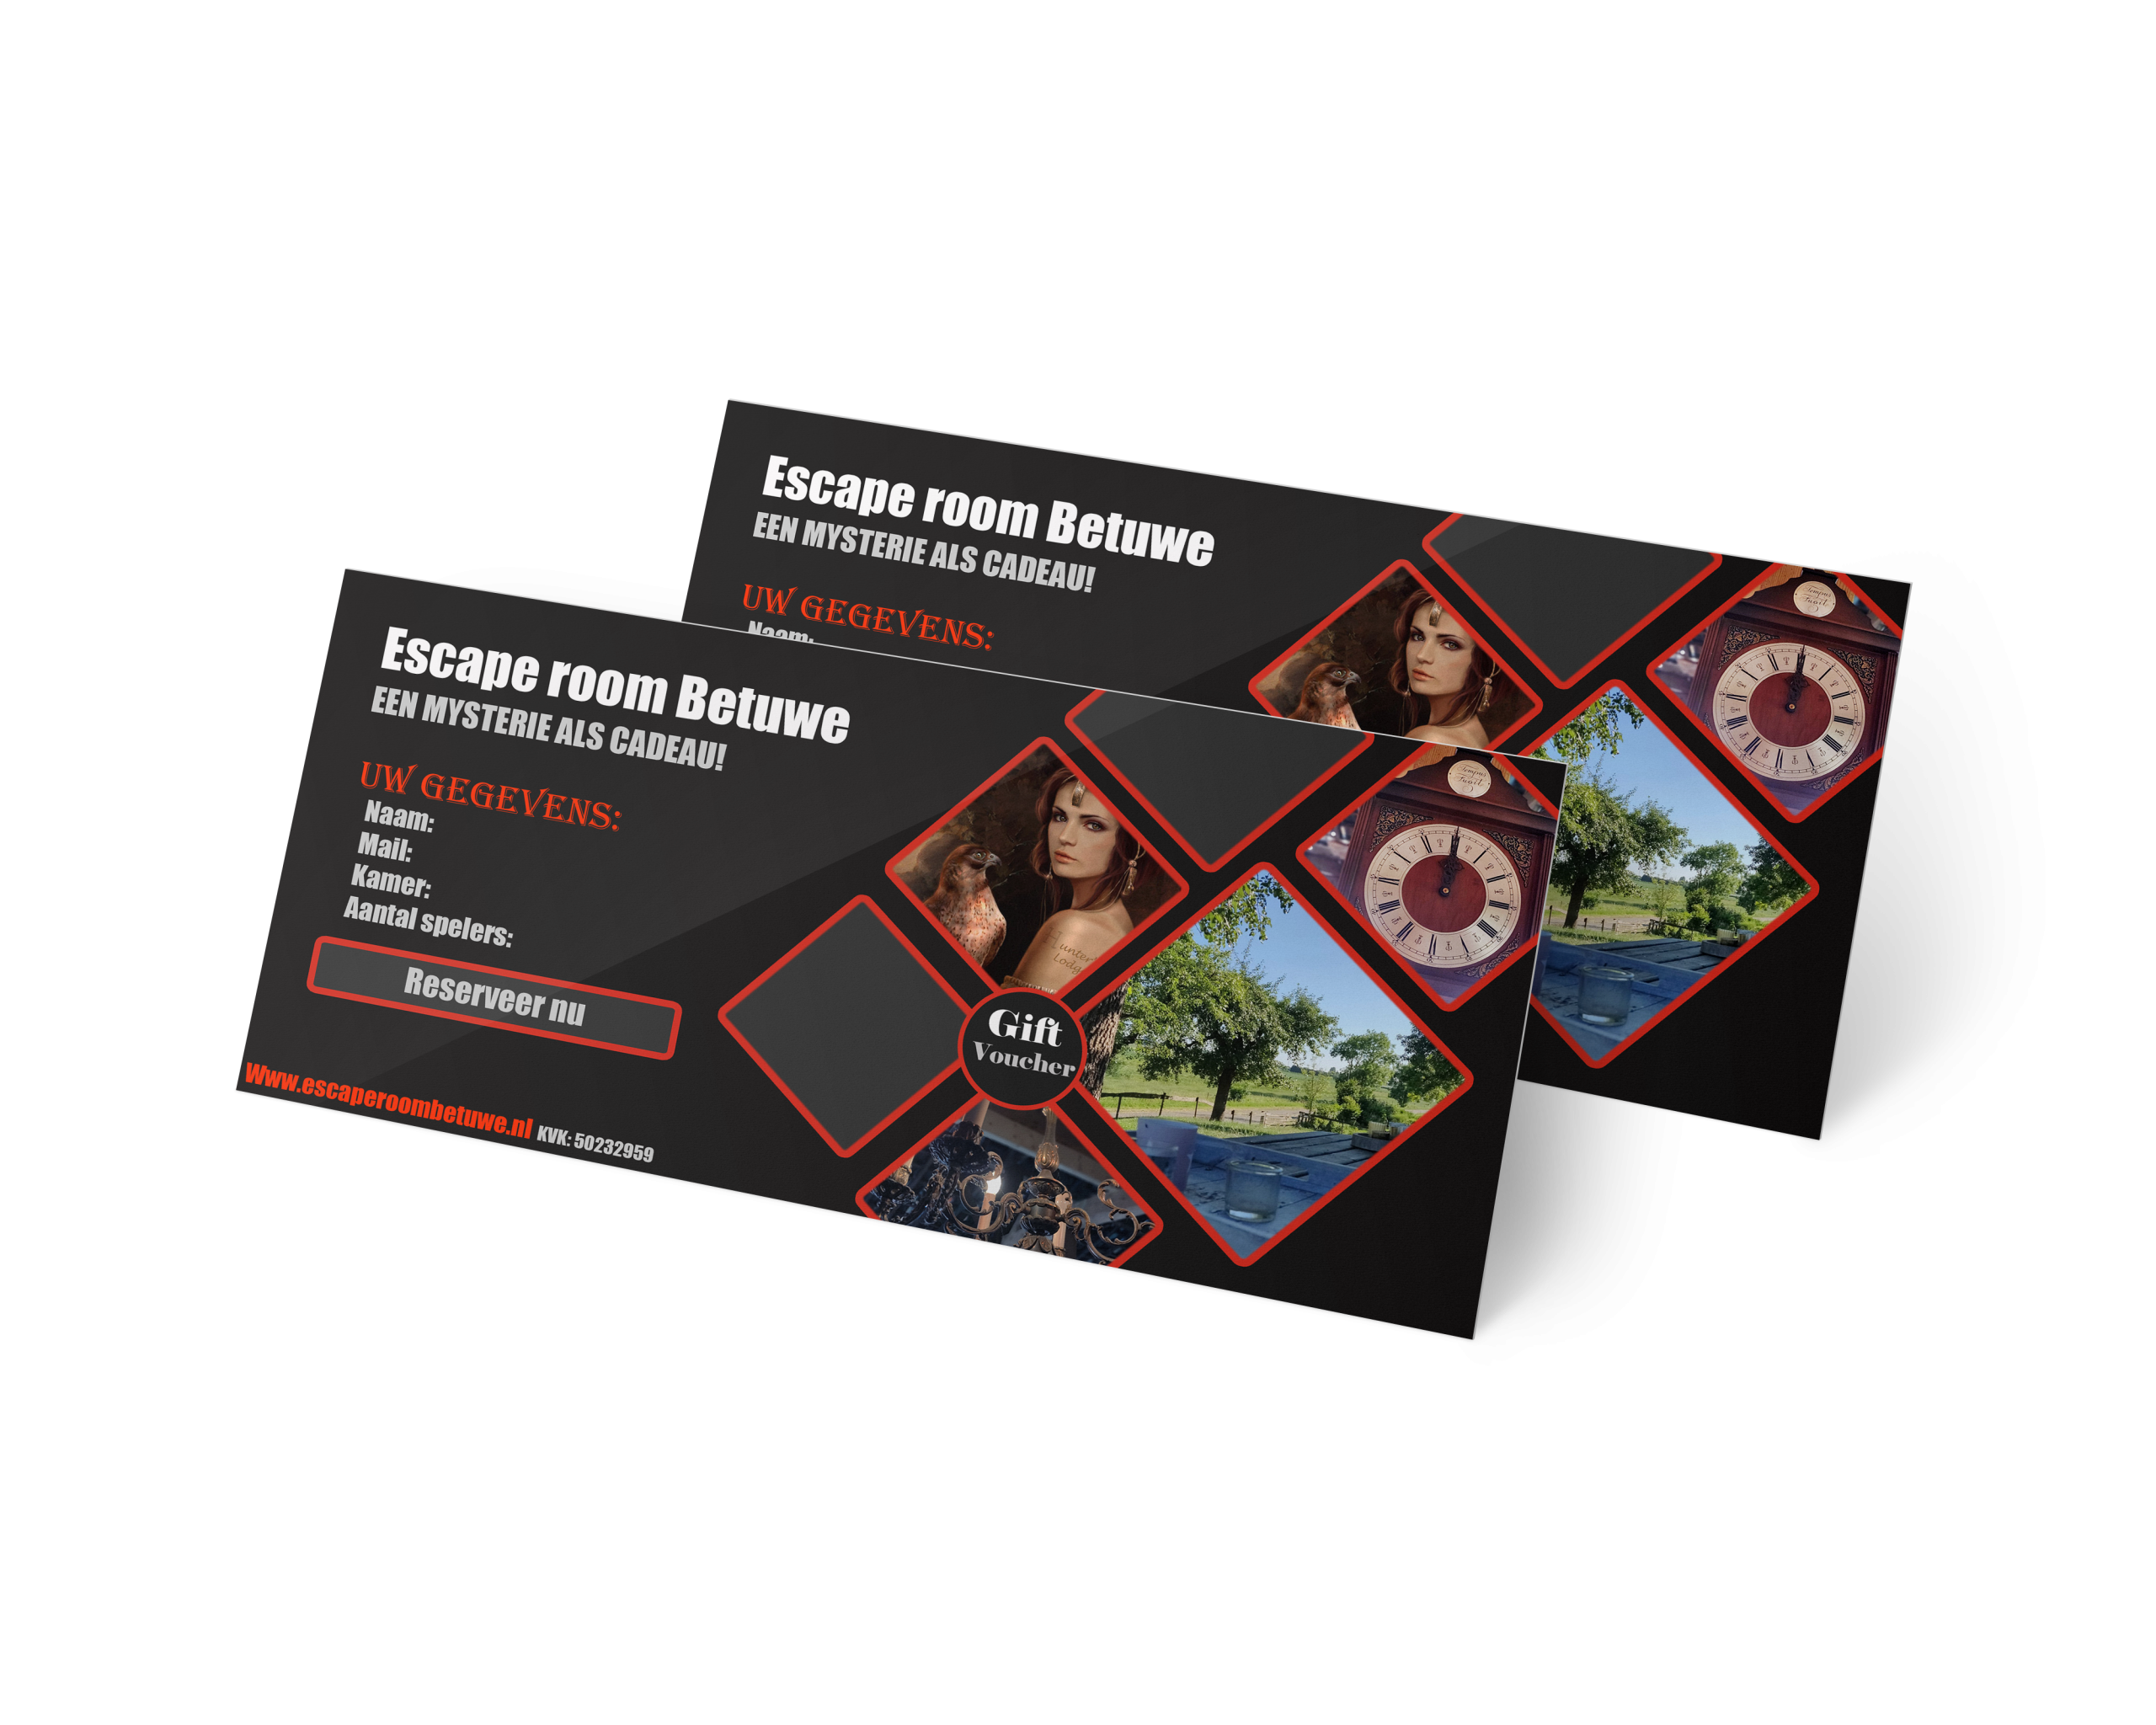 Gift-vouchers-Escape-room-Betuwe-without-background